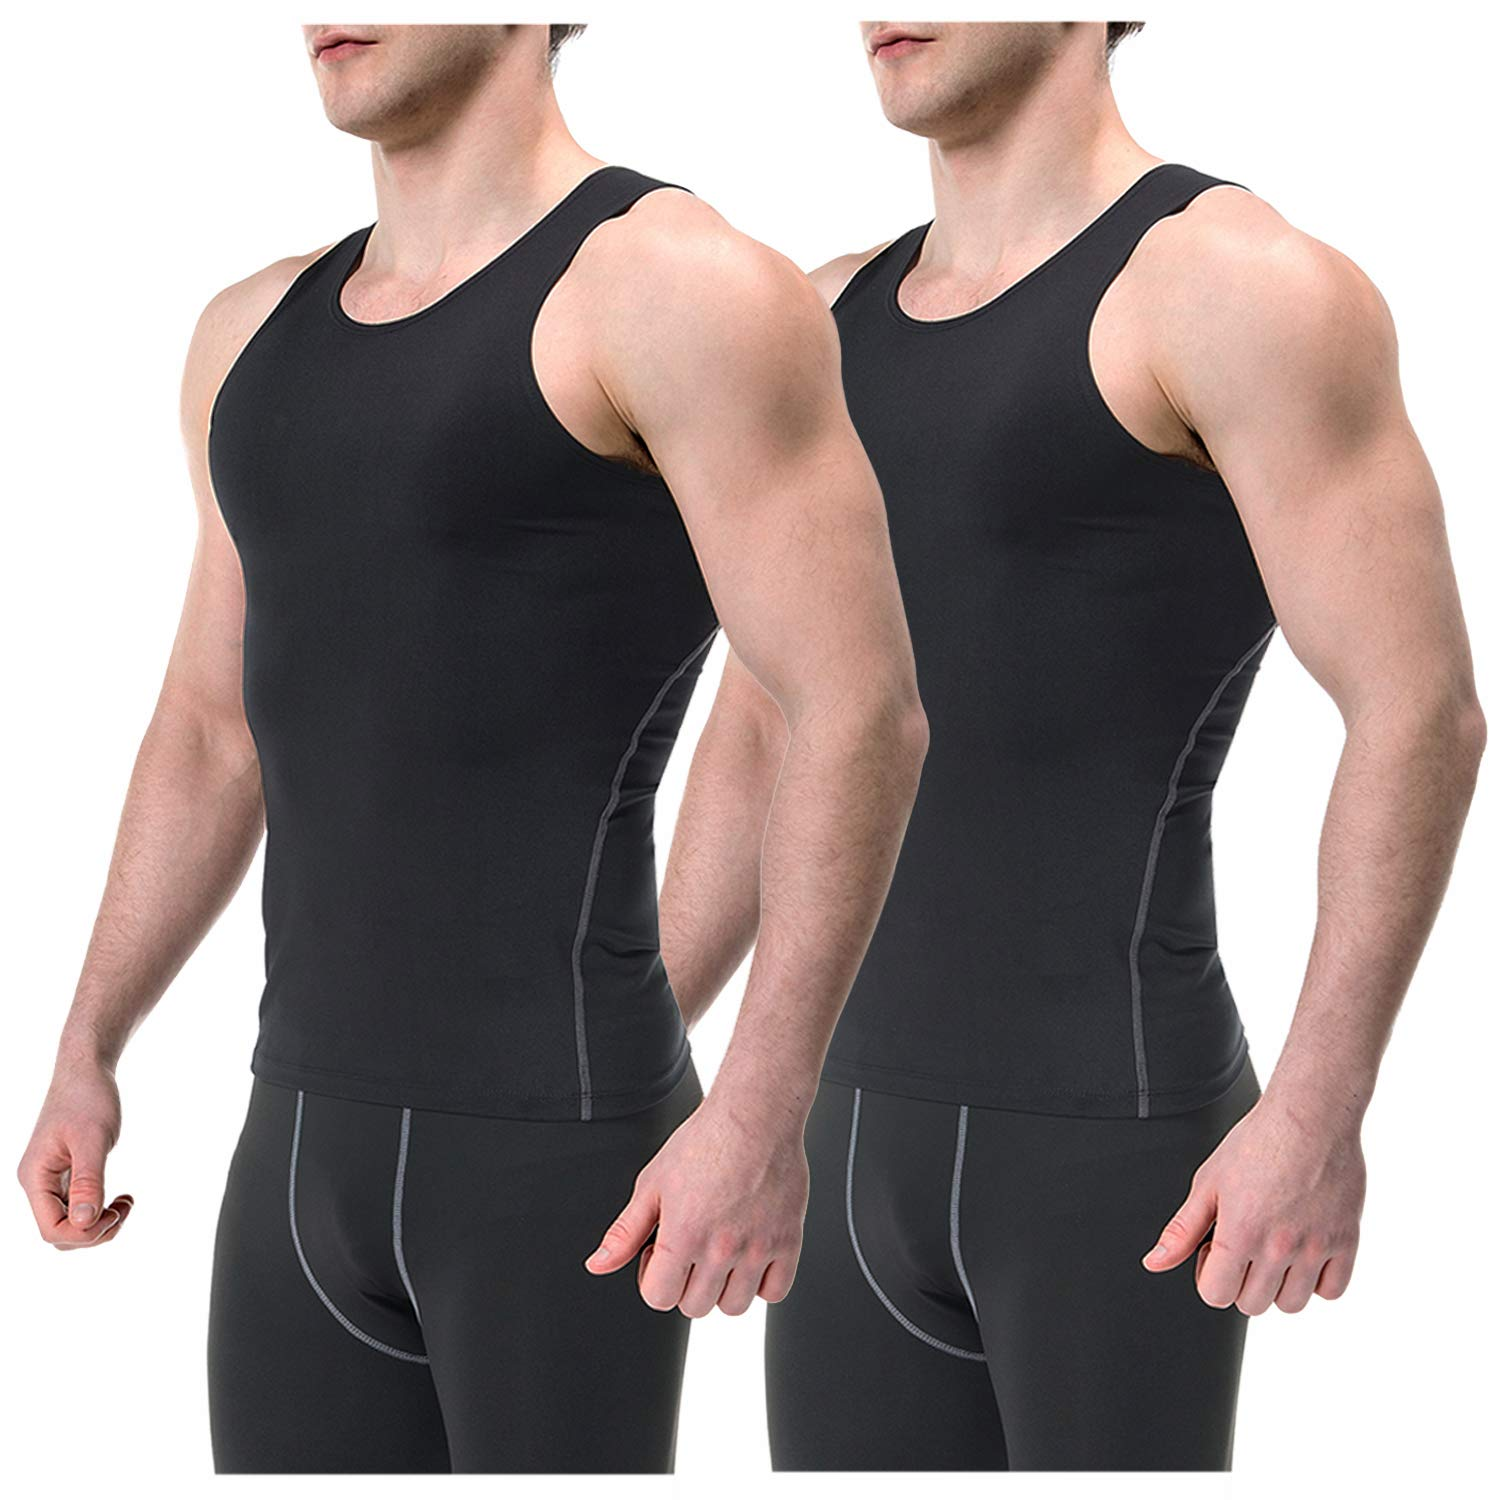 Speverdr Men's Sleeveless Compression Tank Tops Quick-Dry Muscle Base Layer T-Shirt 2 Pack